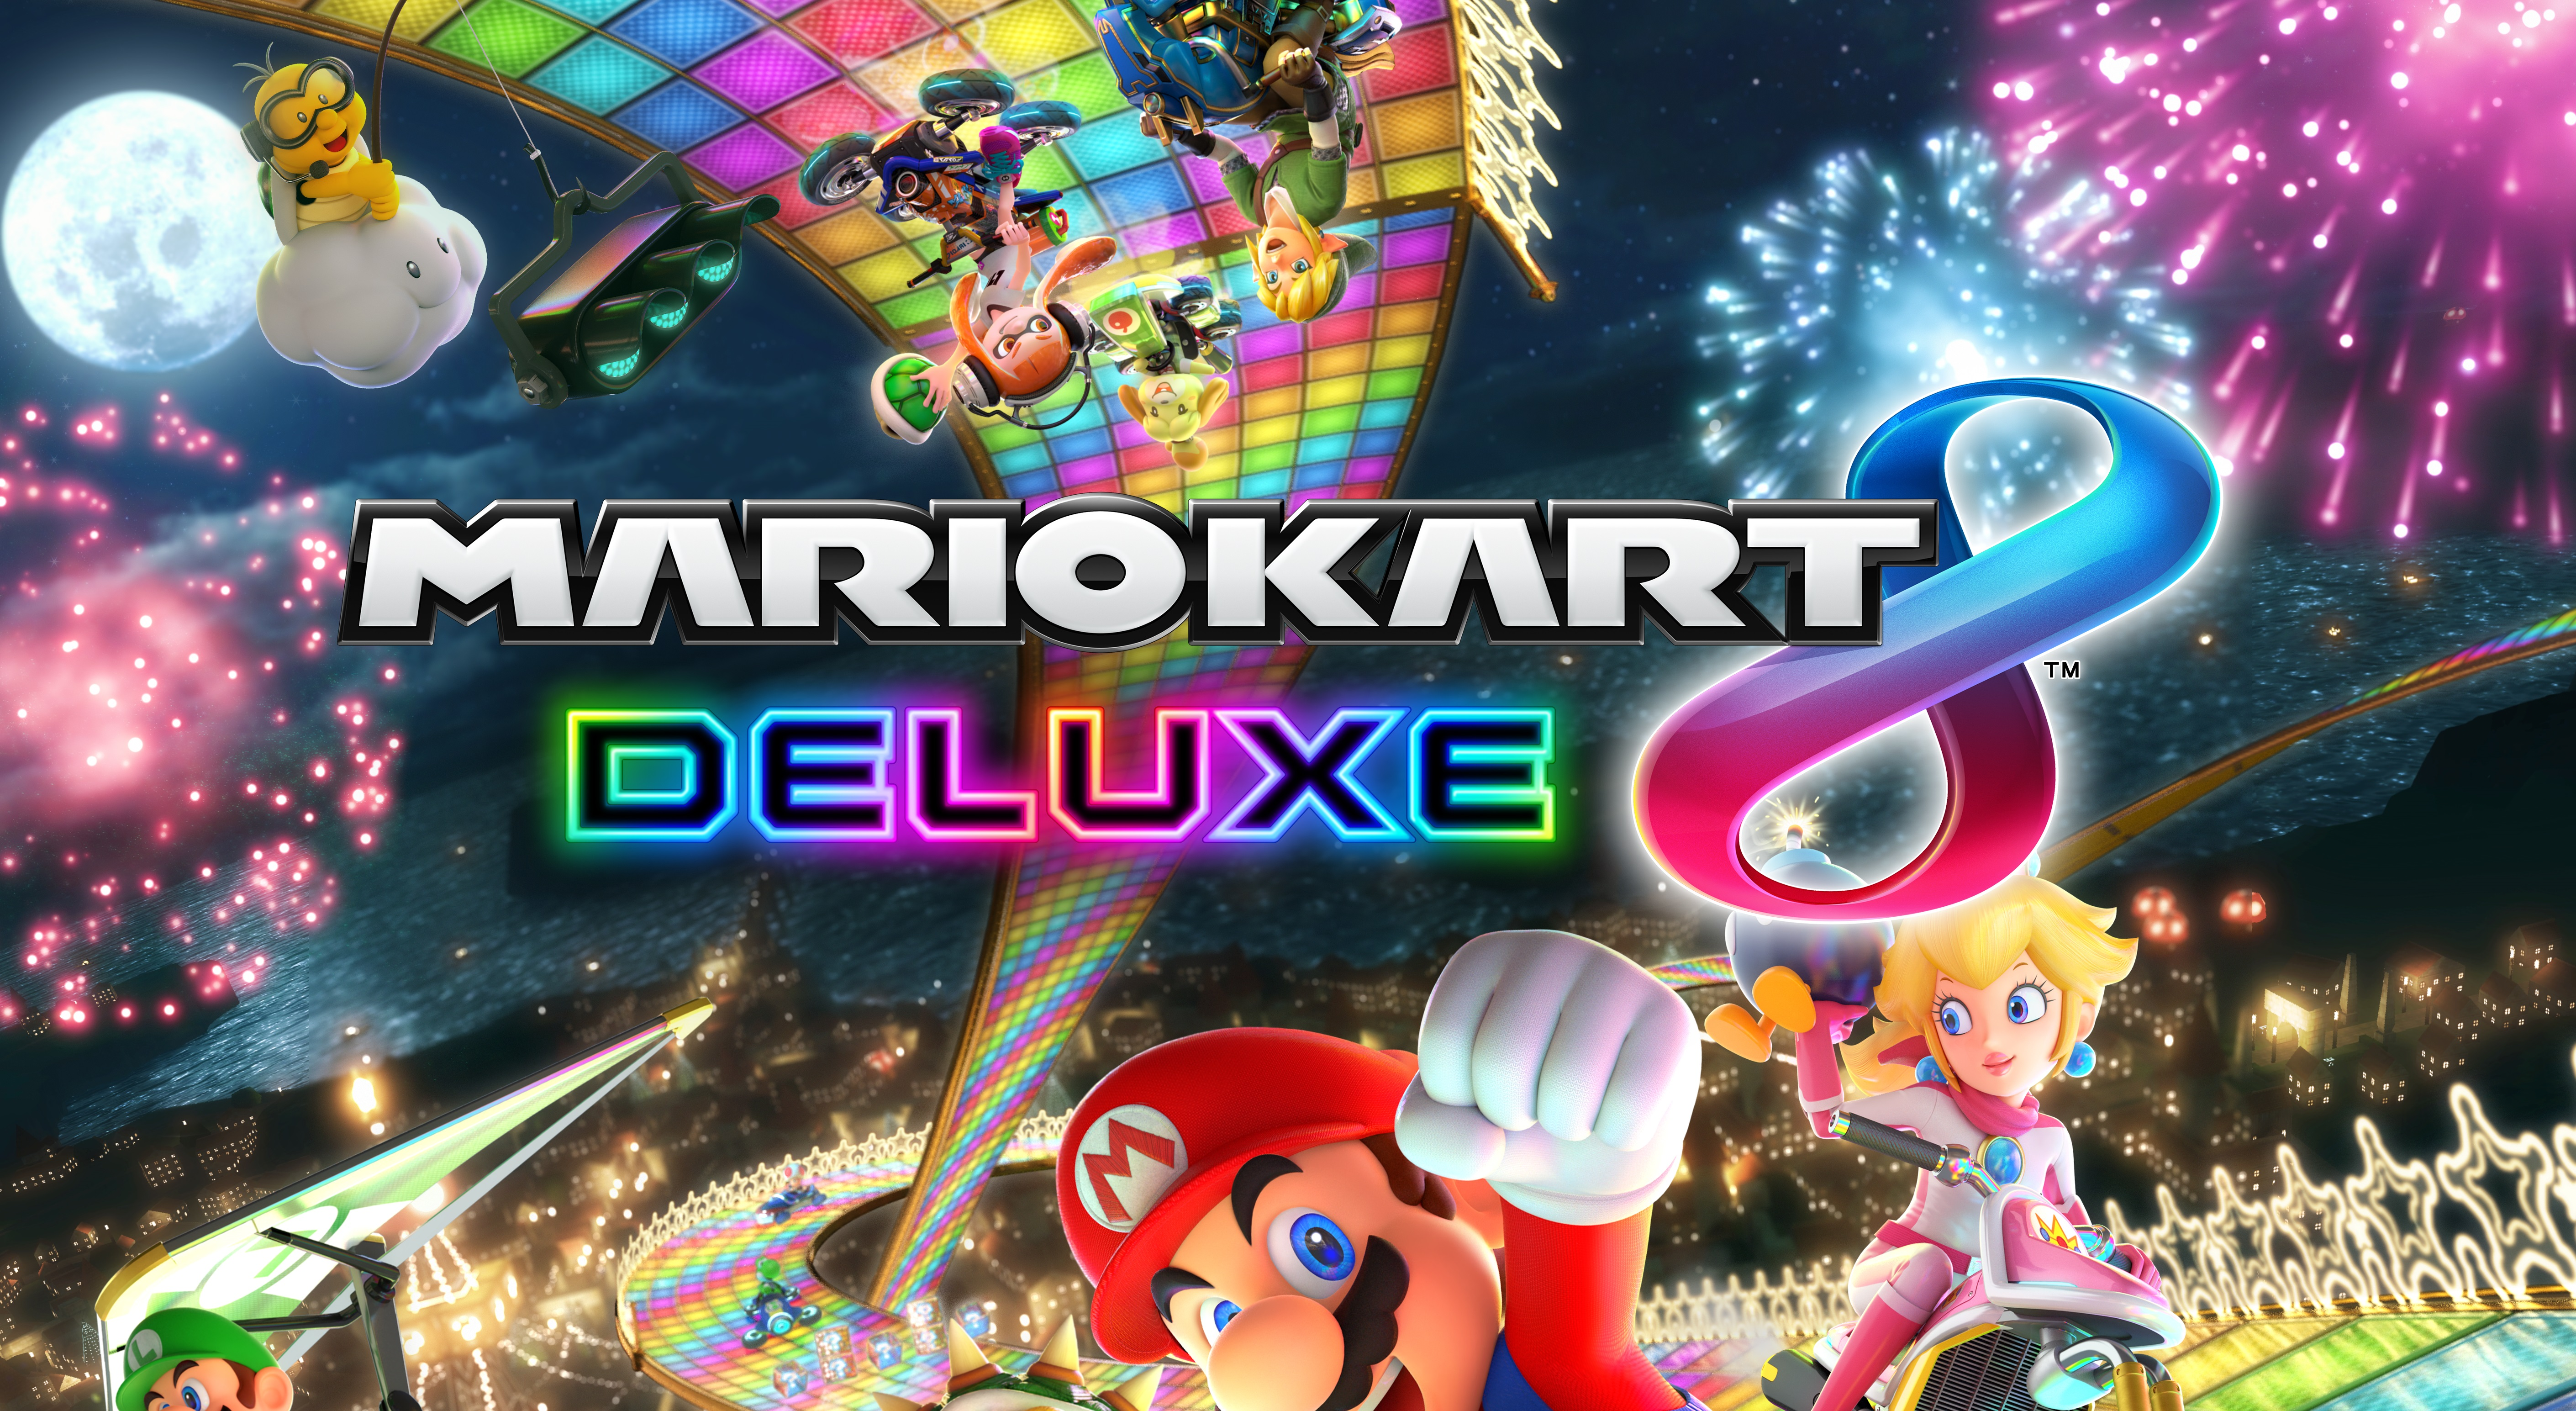 mario kart 8 deluxe releases april 28 runs at 1080p docked features new modes tracks characters